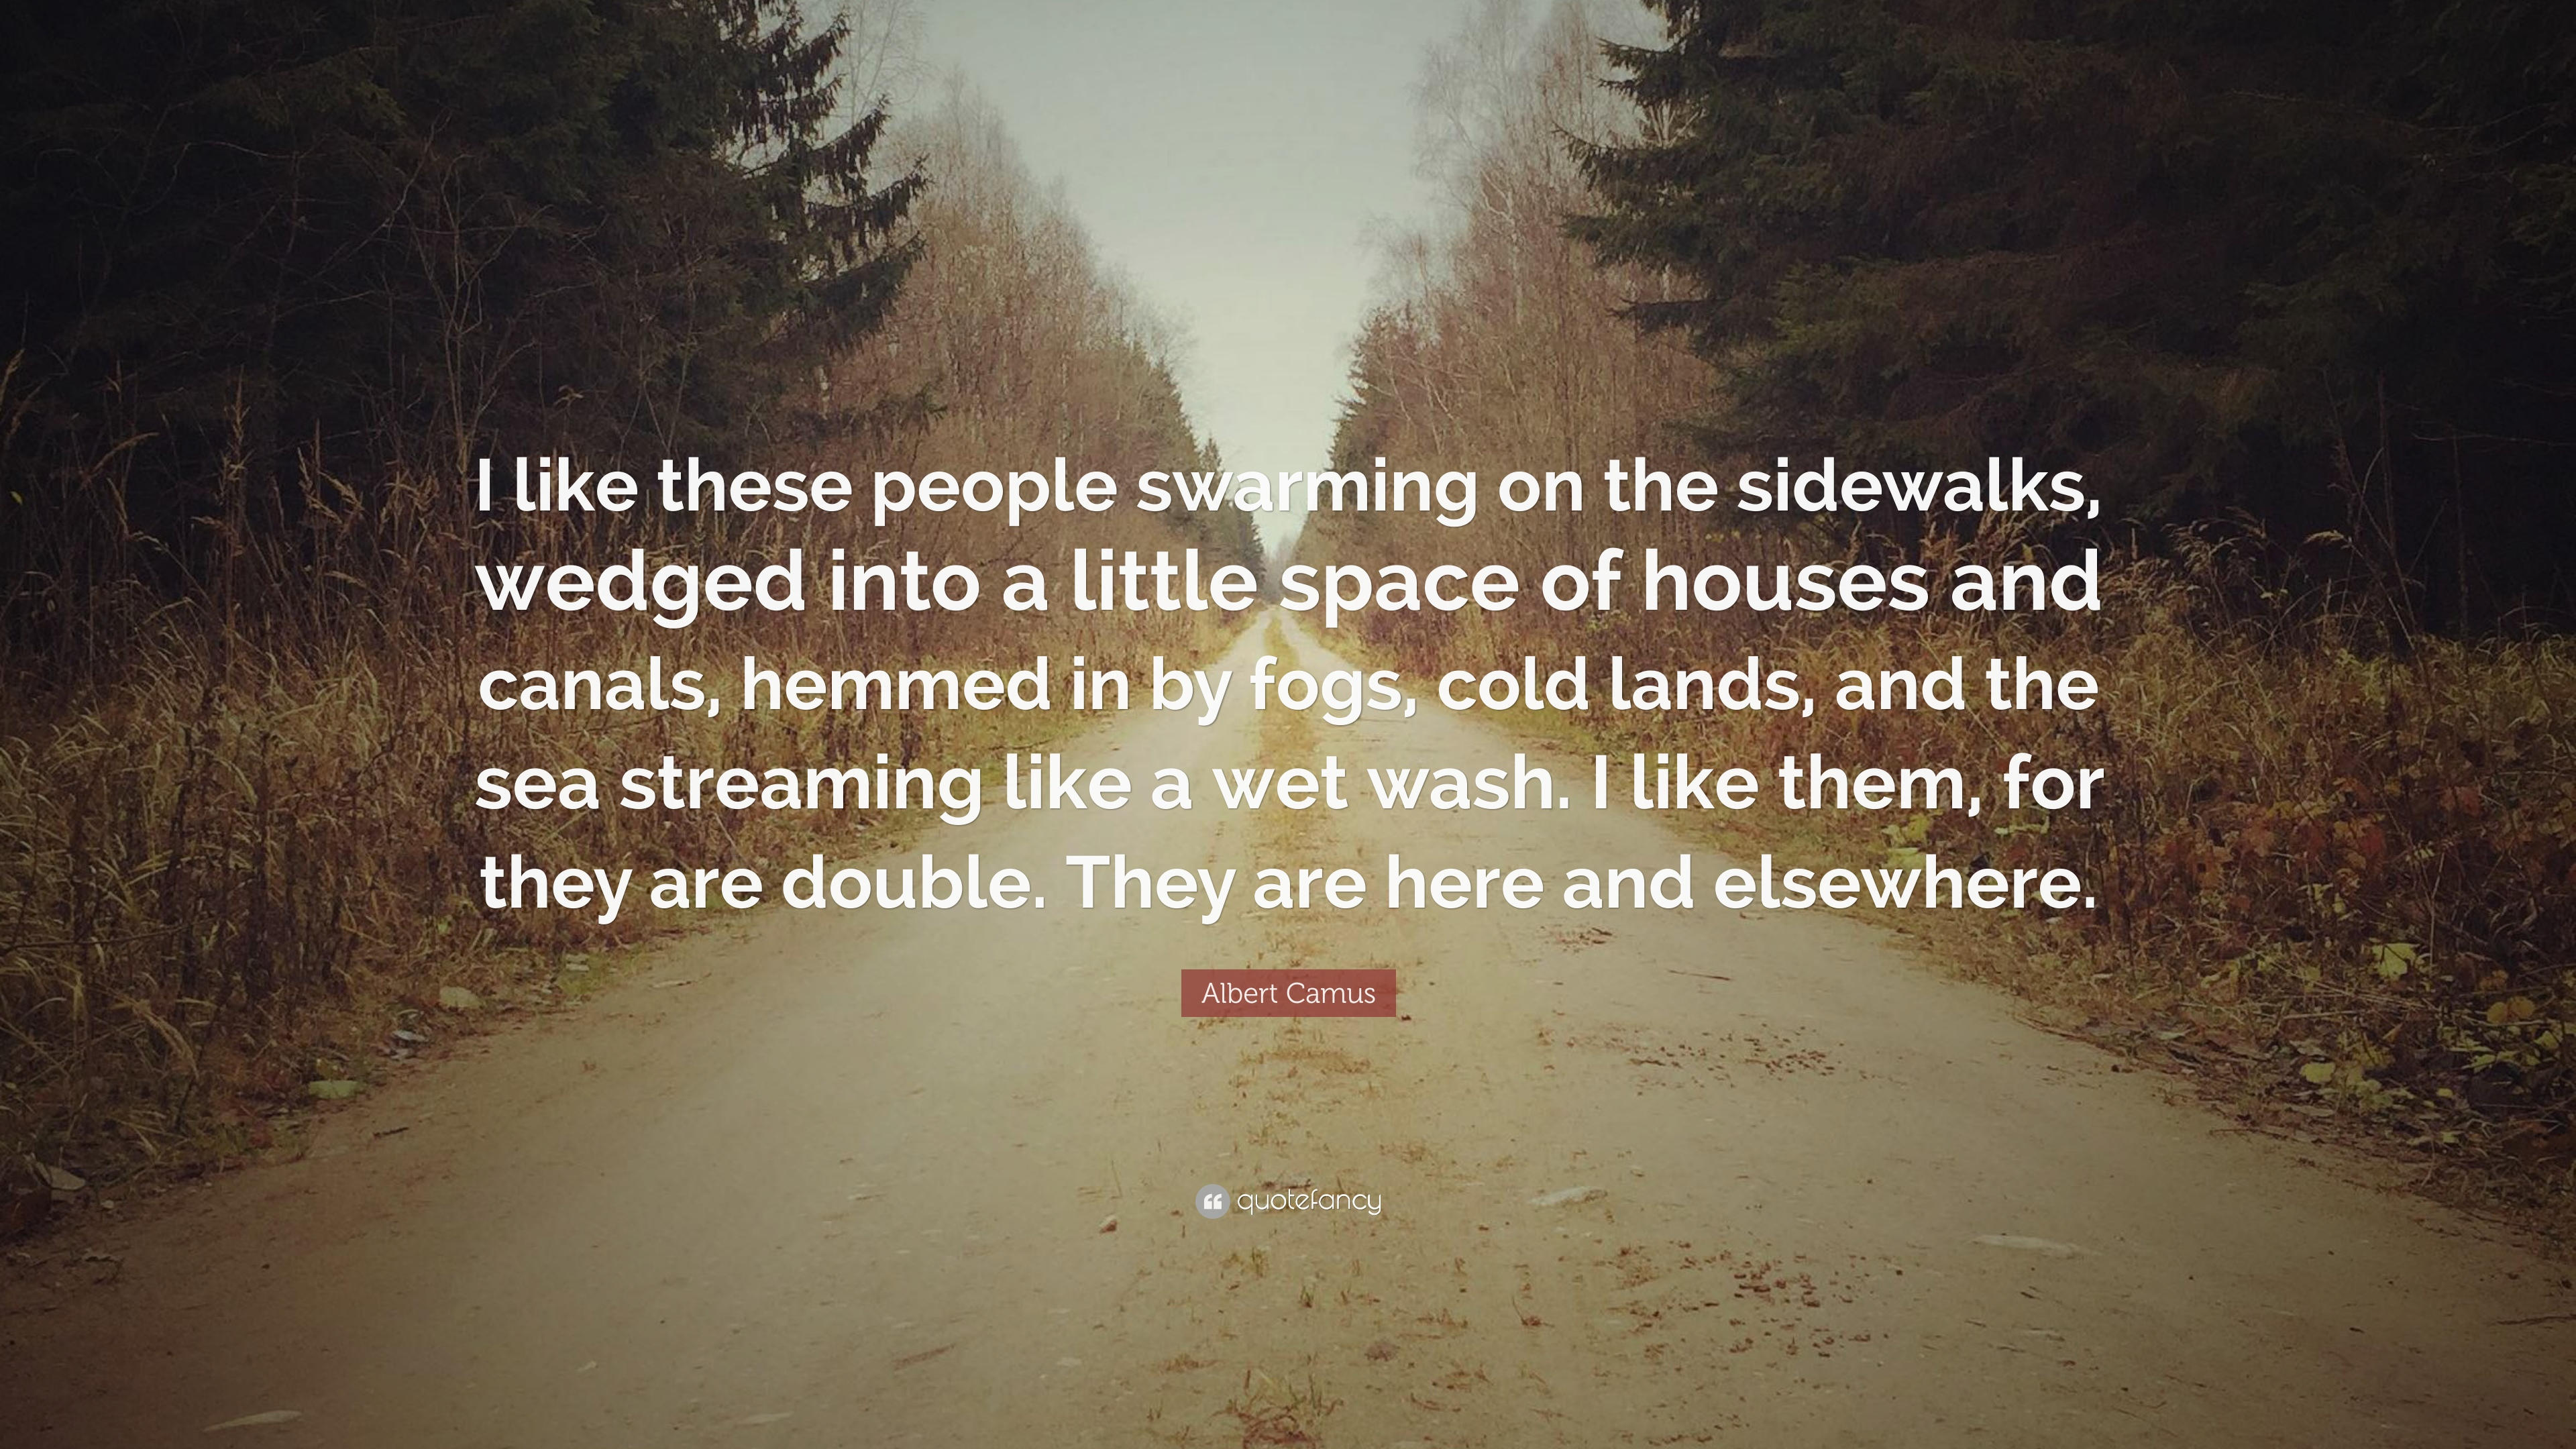 Albert camus quote i like these people swarming on the sidewalks wedged into